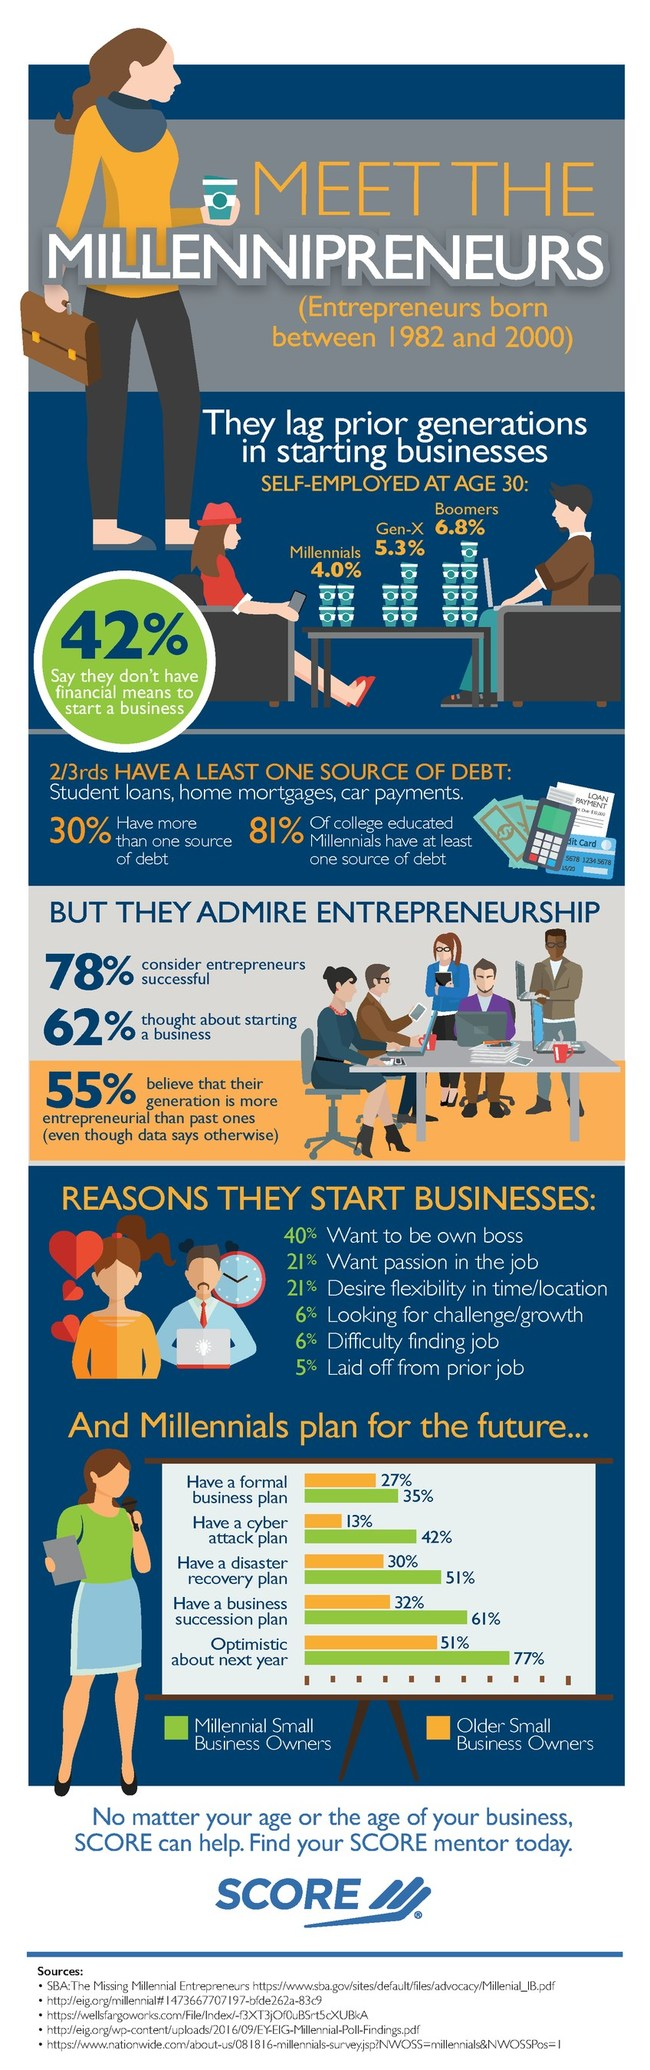 SCORE, the nation's largest network of volunteer, expert business mentors, has gathered statistics on millennial entrepreneurs that show they lag behind previous generations in starting businesses.